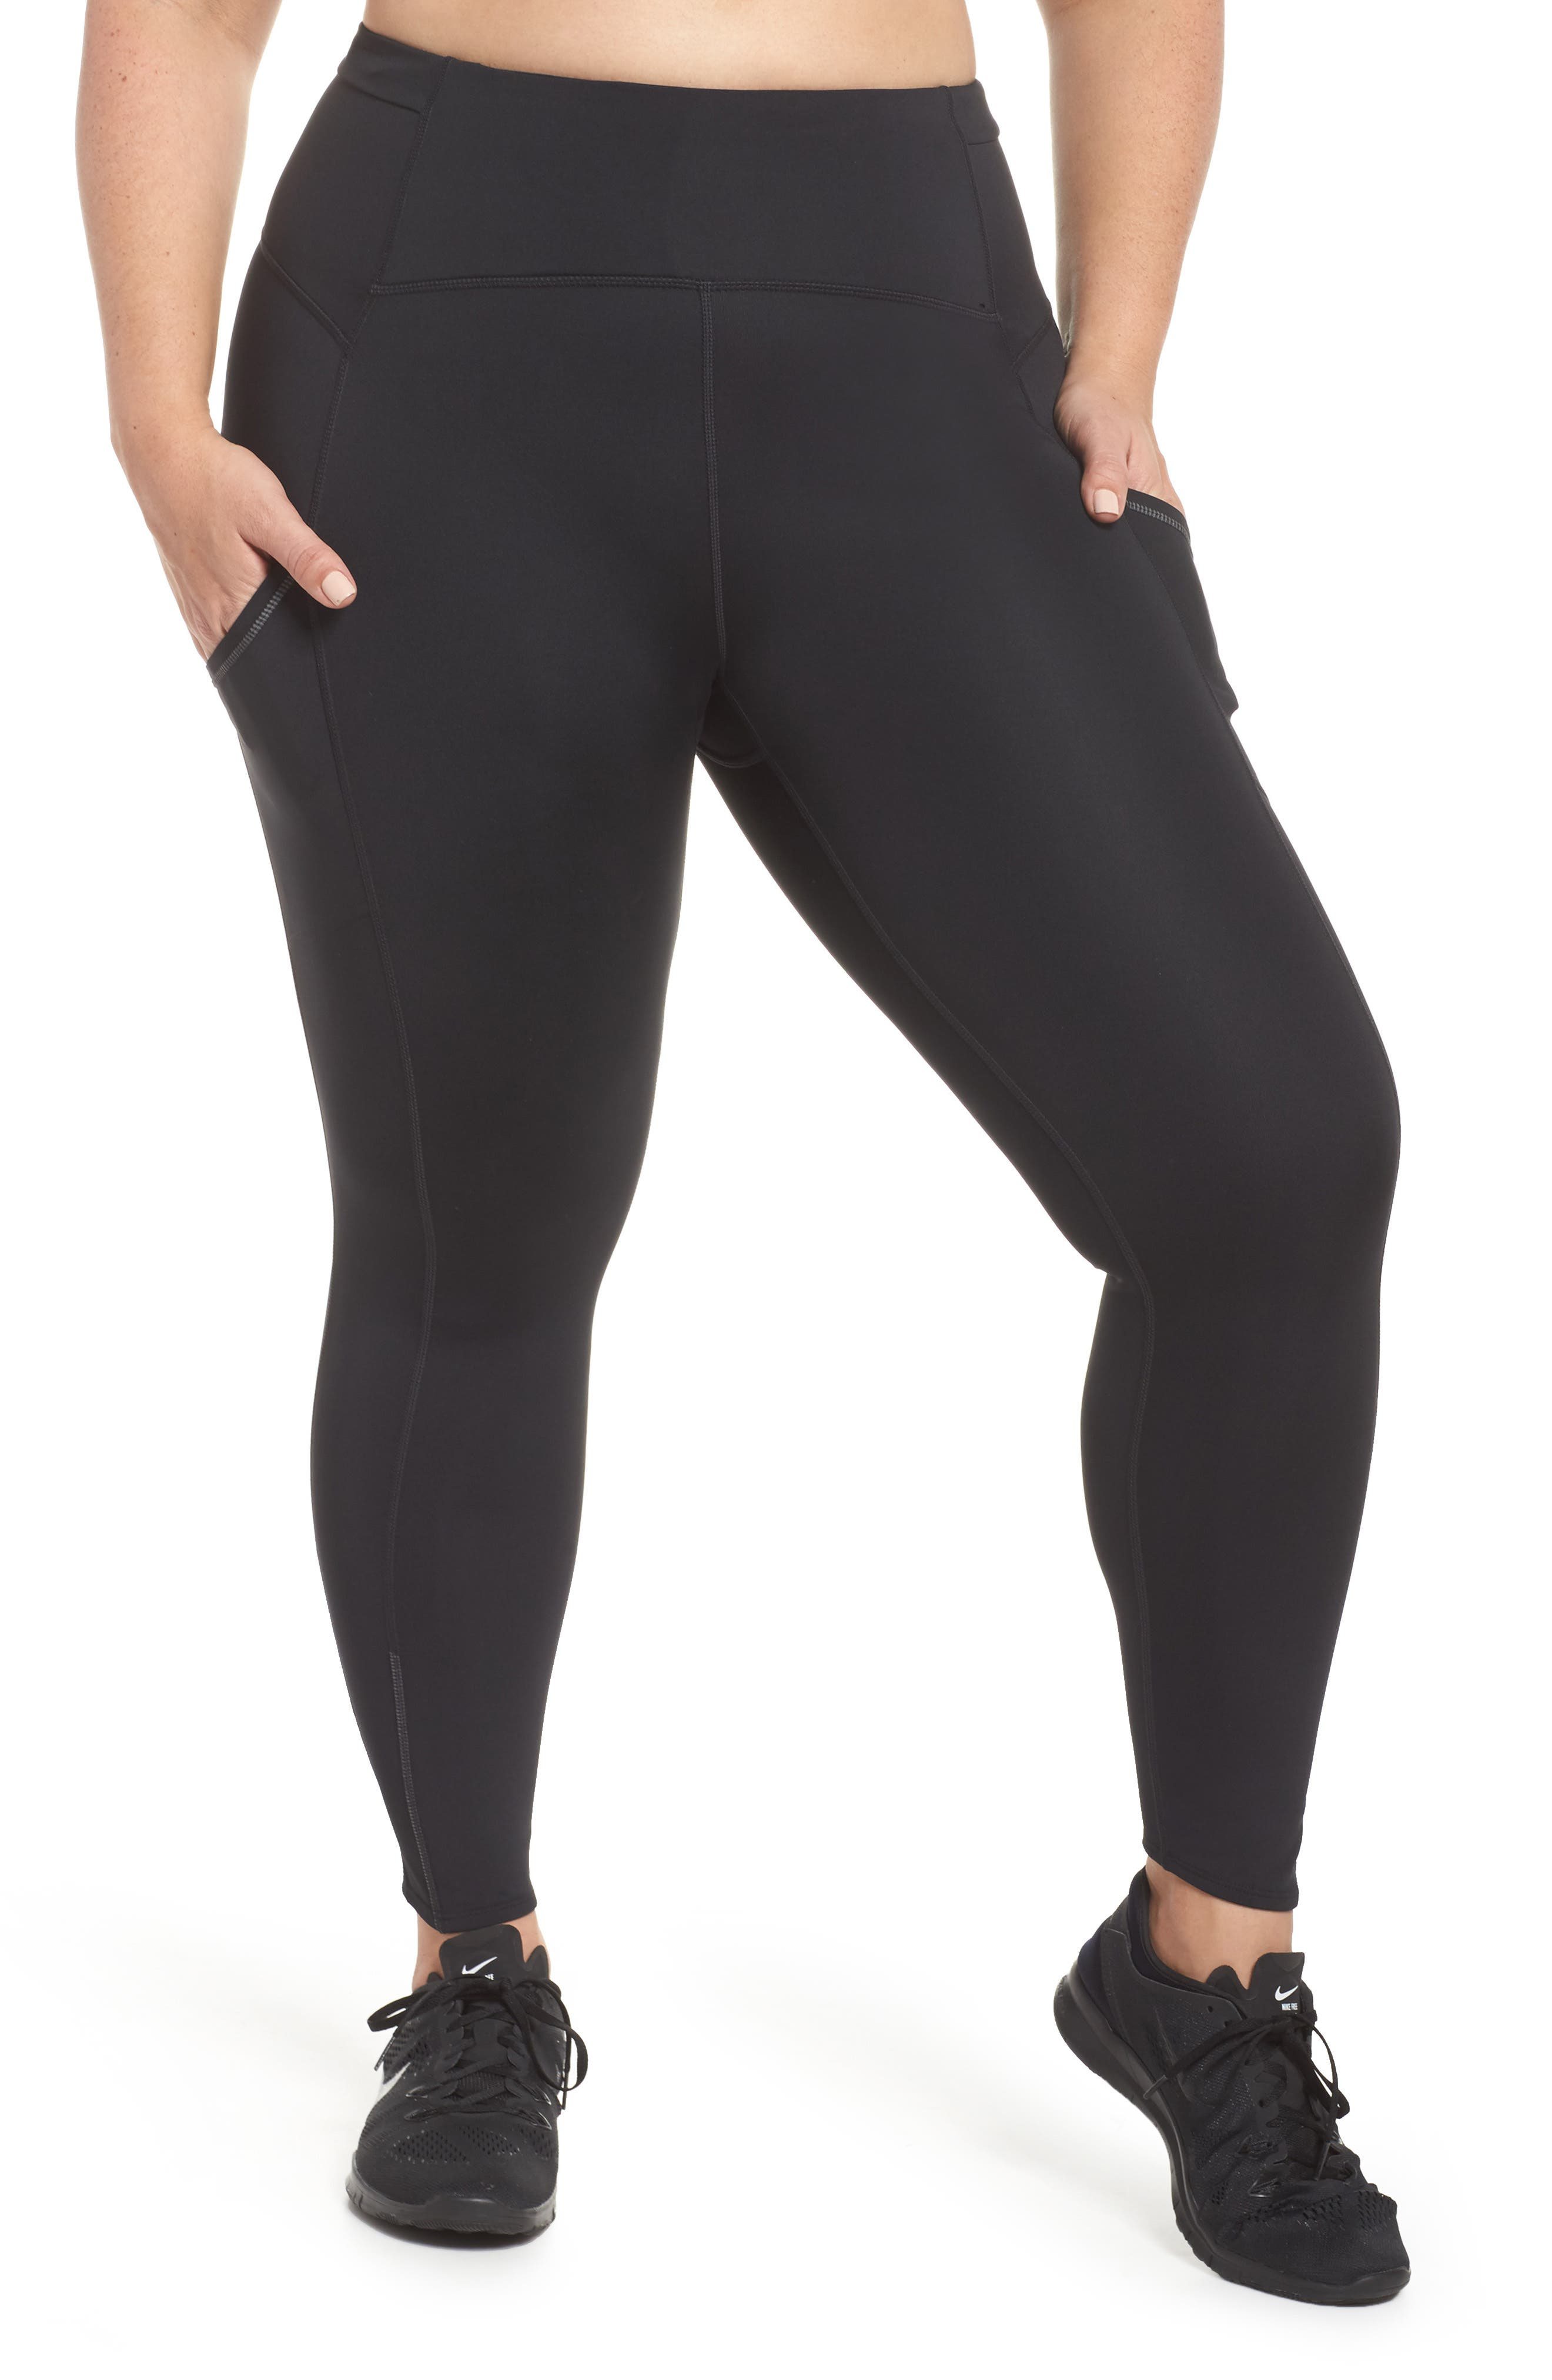 Sprint In High Waist Midi Leggings,                             Main thumbnail 1, color,                             Black